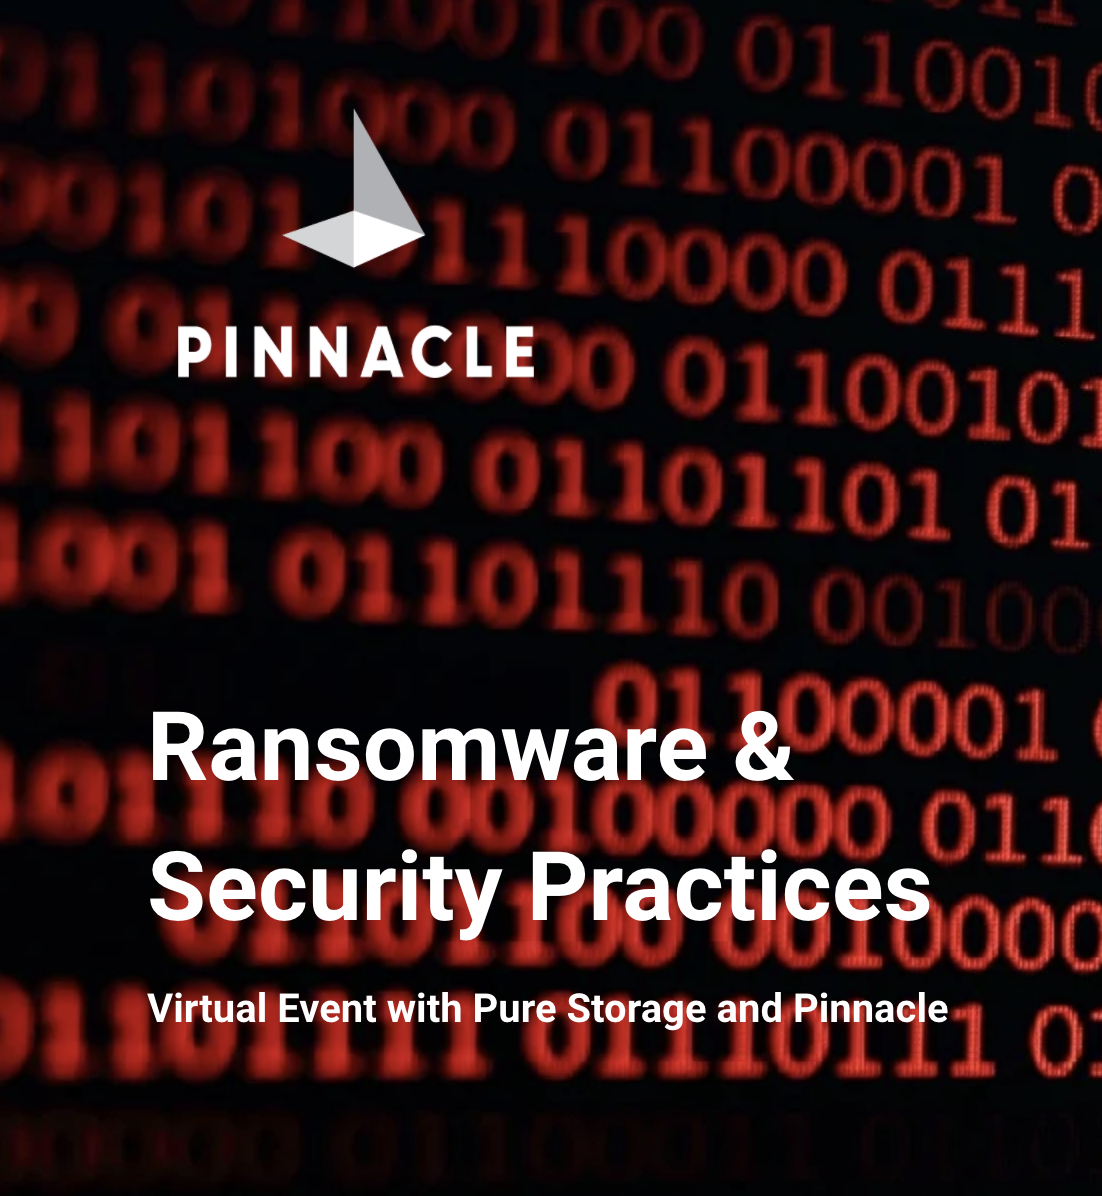 Ransomware & Security Practices